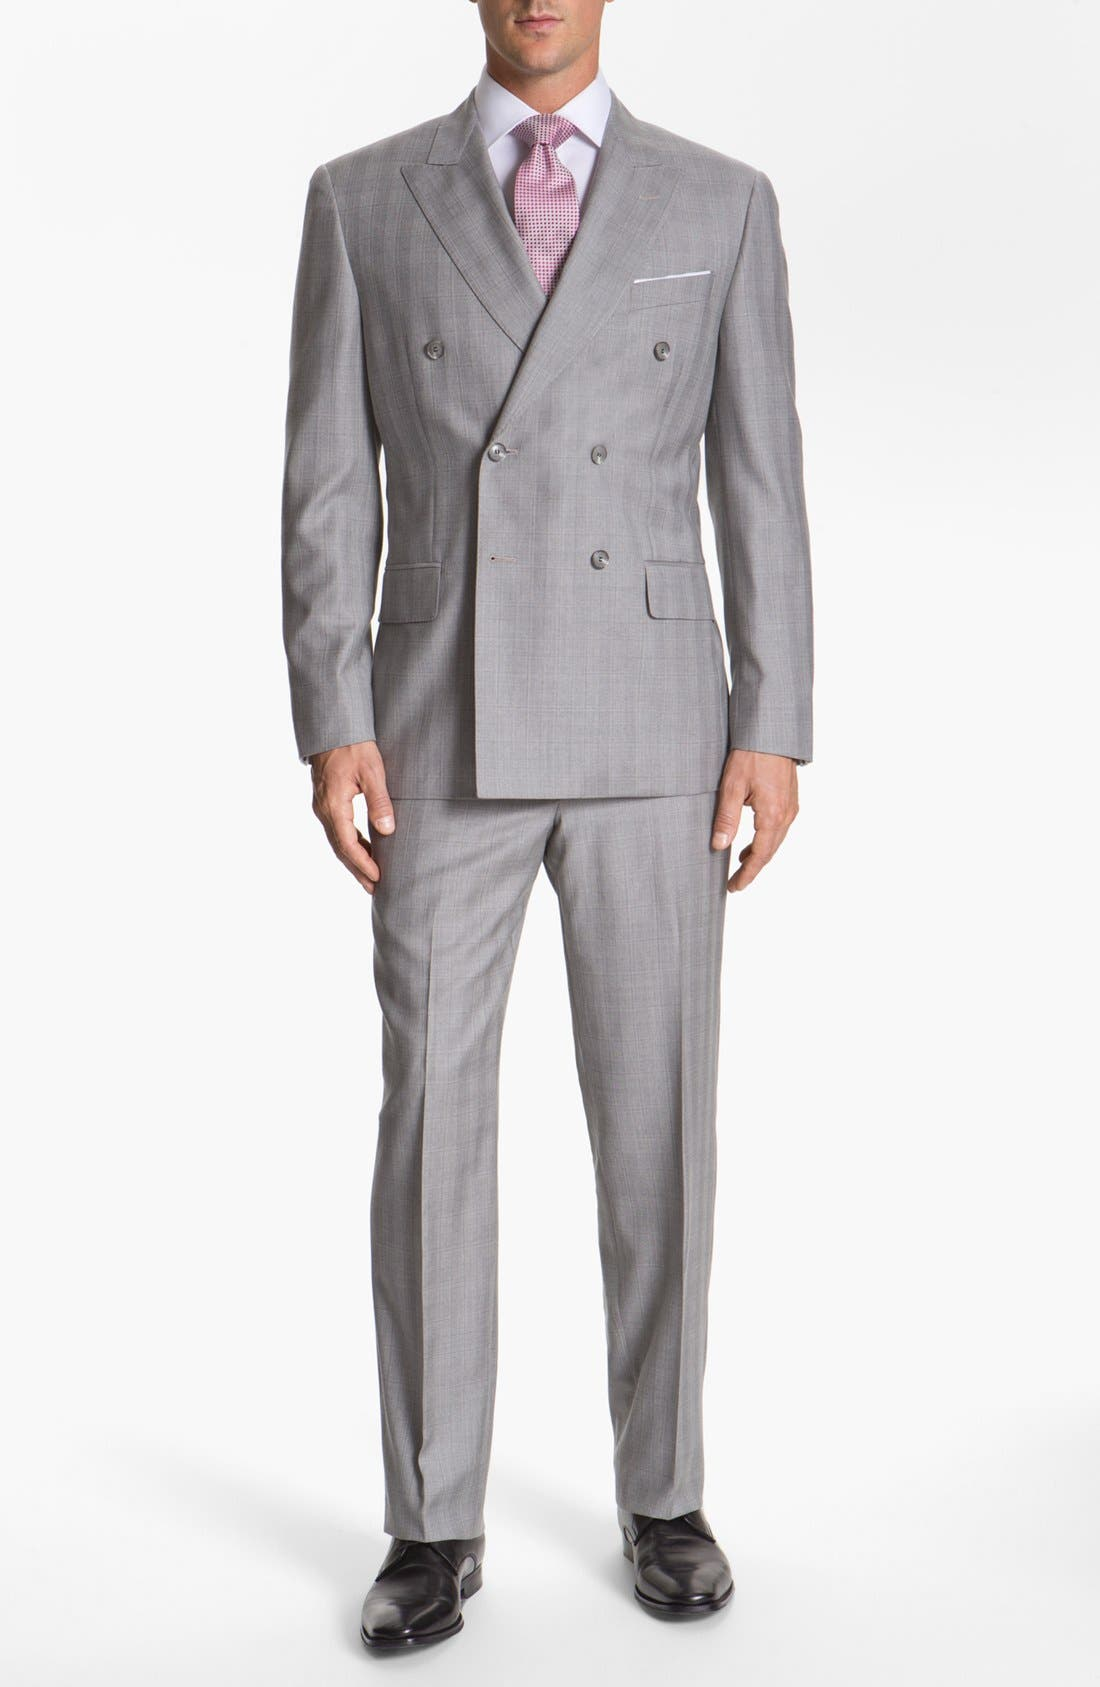 Alternate Image 1 Selected - Joseph Abboud 'Platinum' Double Breasted Suit